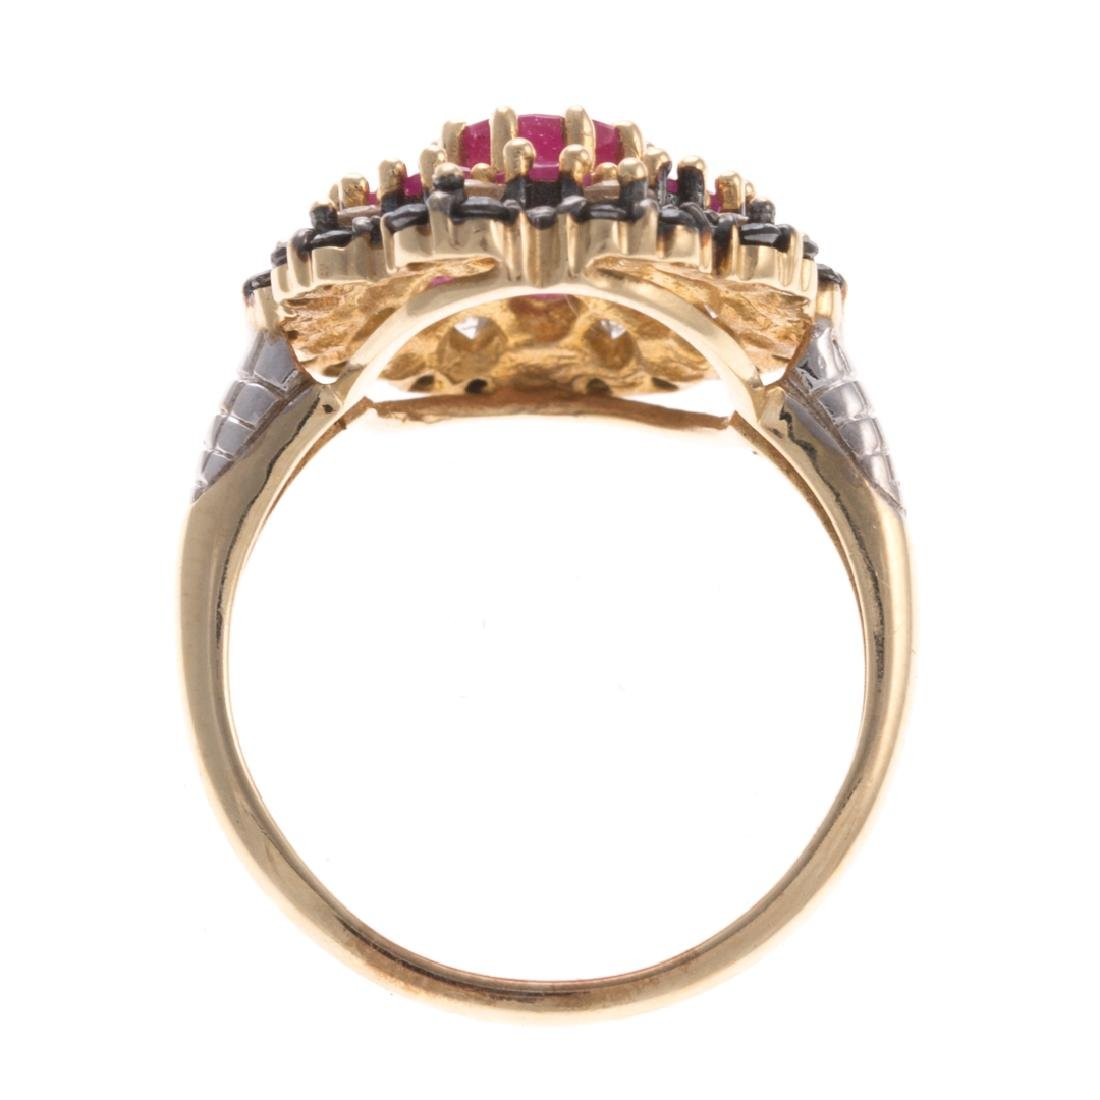 A Lady's Diamond & Ruby Ring in 10K - 3